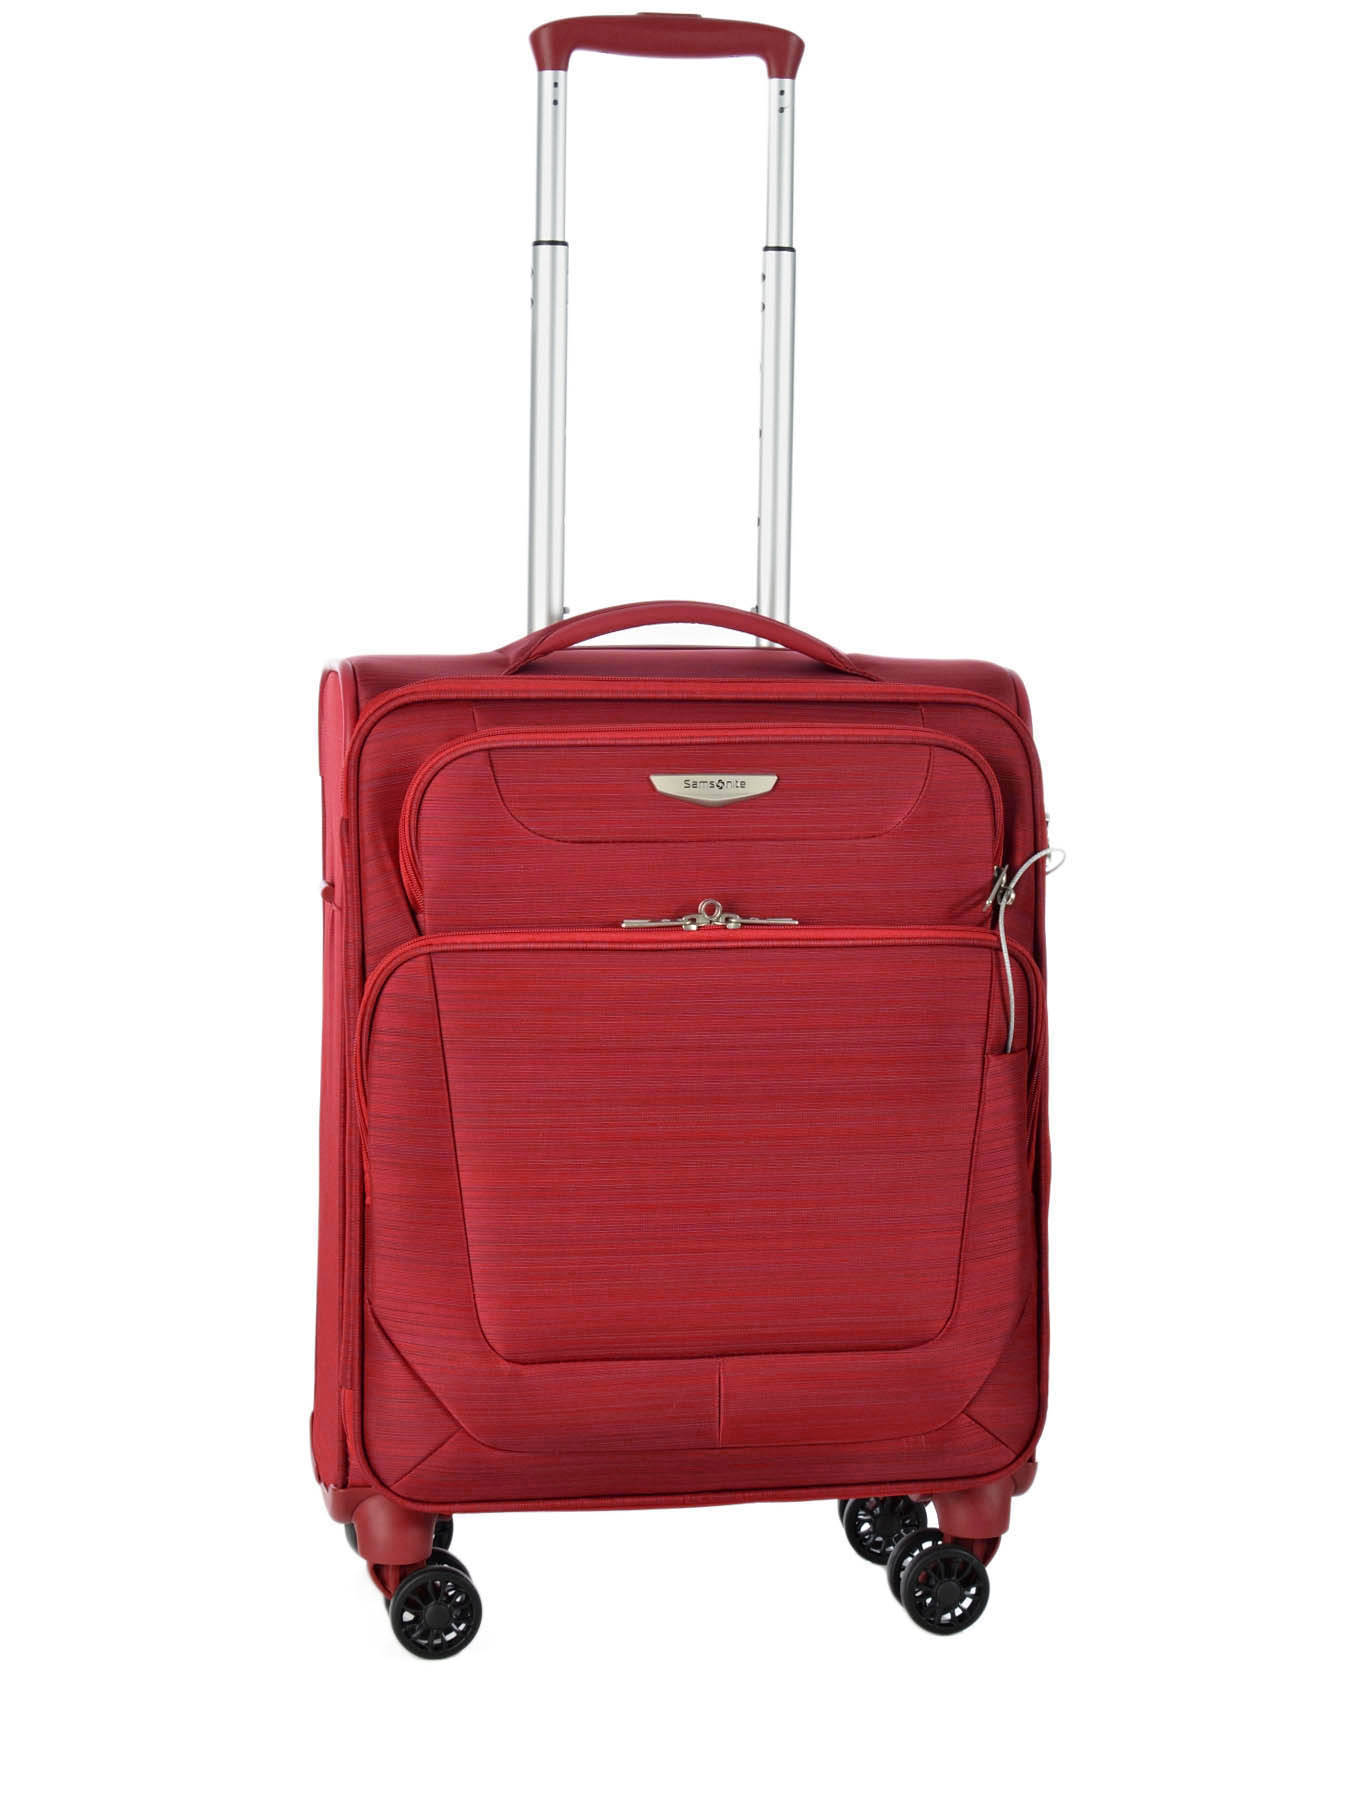 valise cabine samsonite spark burgundy en vente au meilleur prix. Black Bedroom Furniture Sets. Home Design Ideas